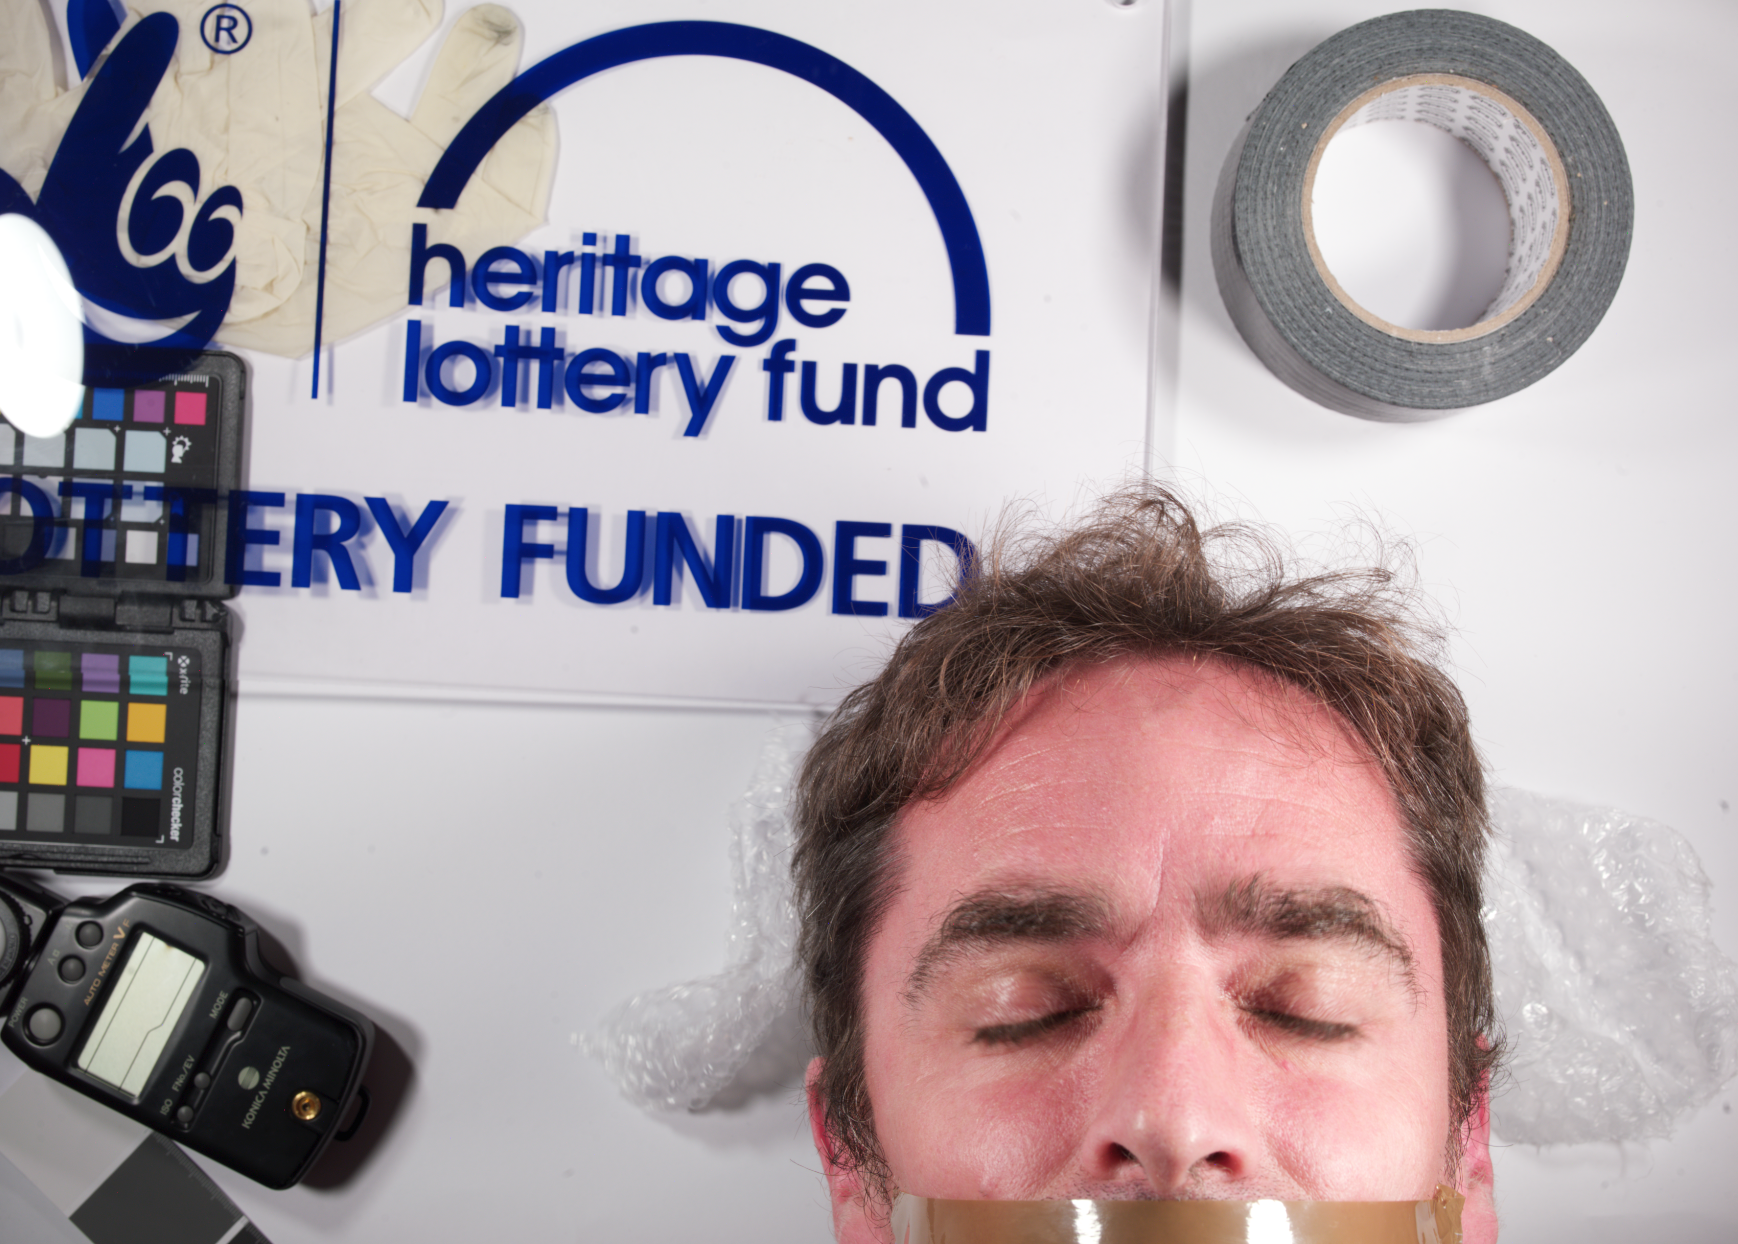 A selfie taken with a special Rostrum Camera of NDACA archivist Alex Cowan, he has tape around his mouth and his eyes closed, with detritus surrounding him